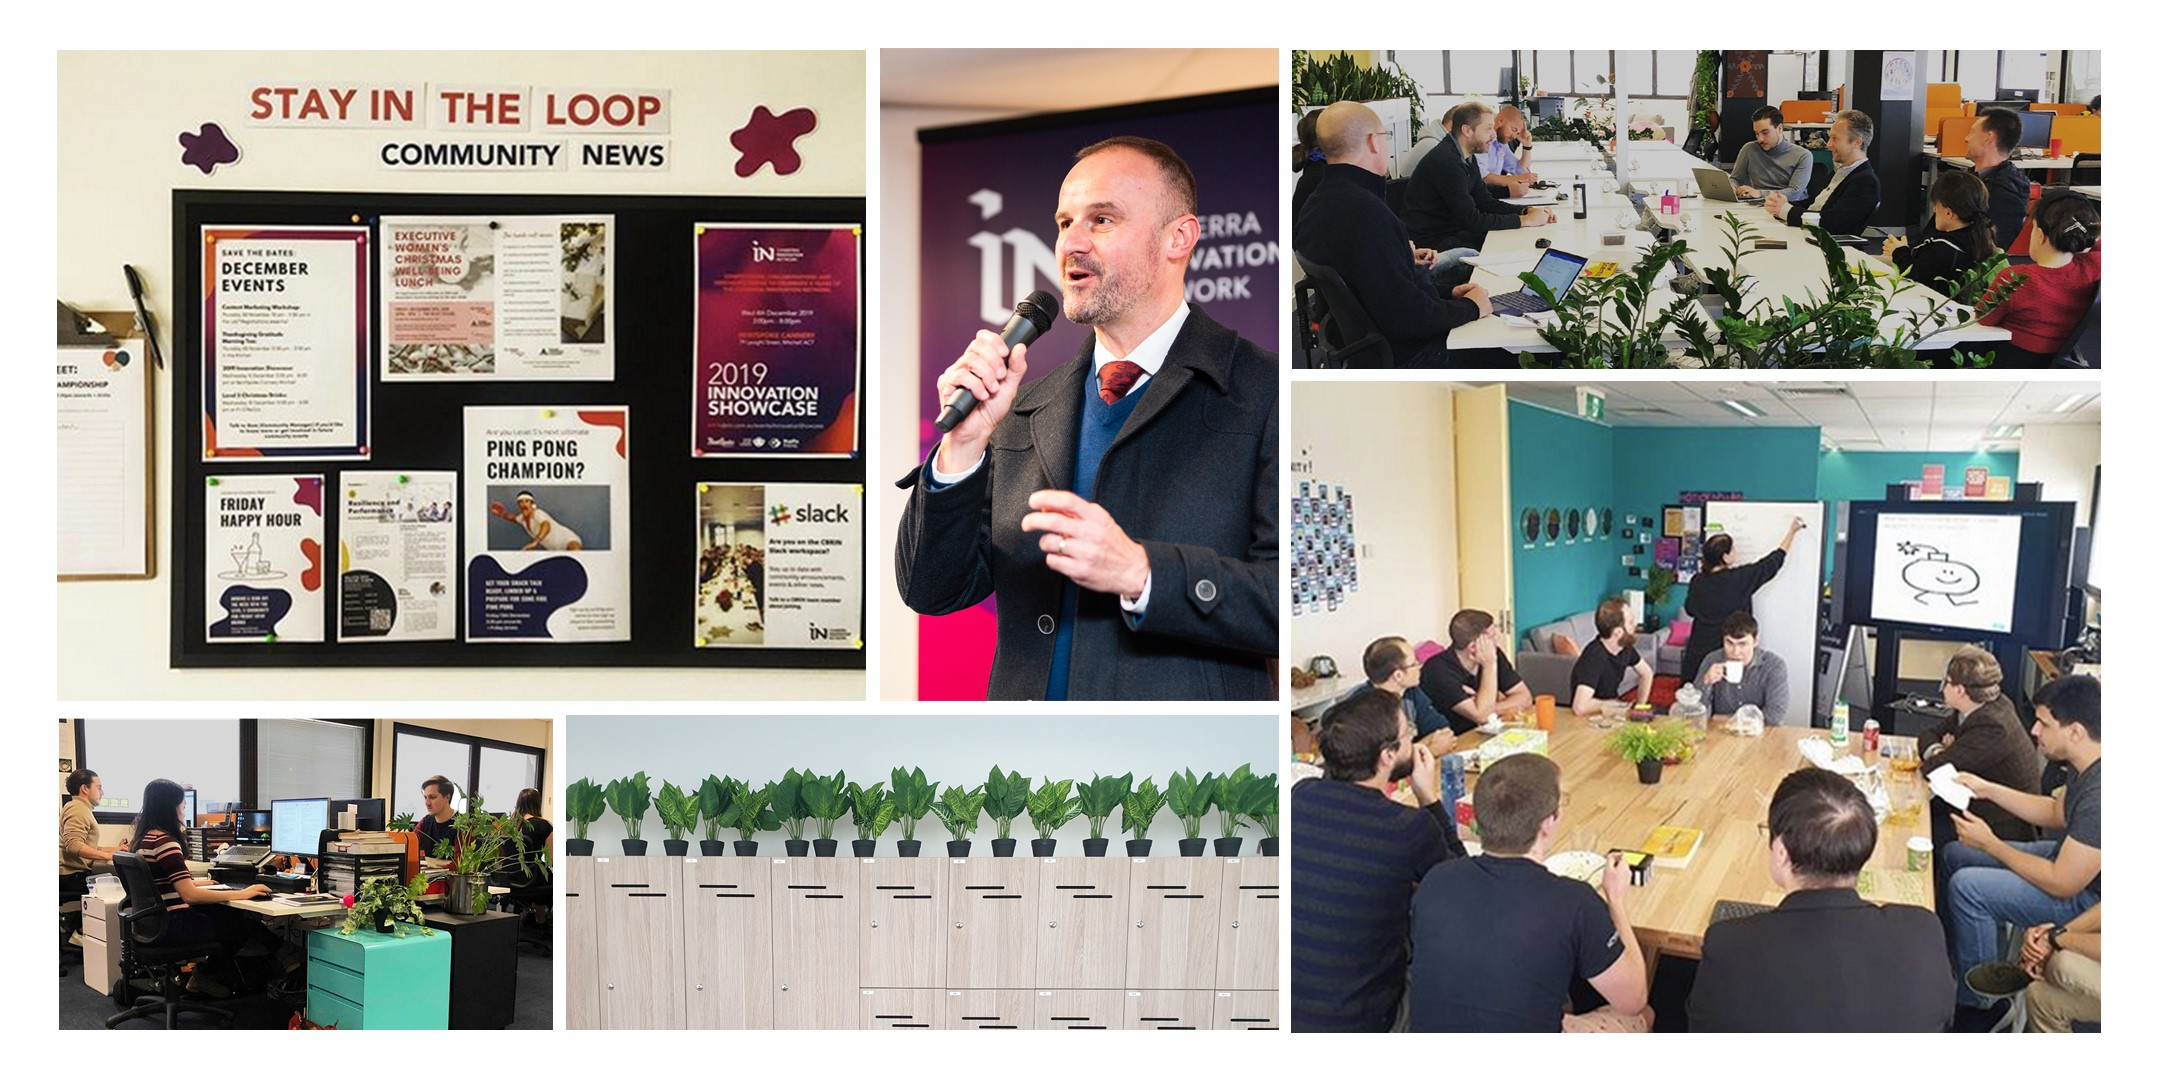 collage of coworking images